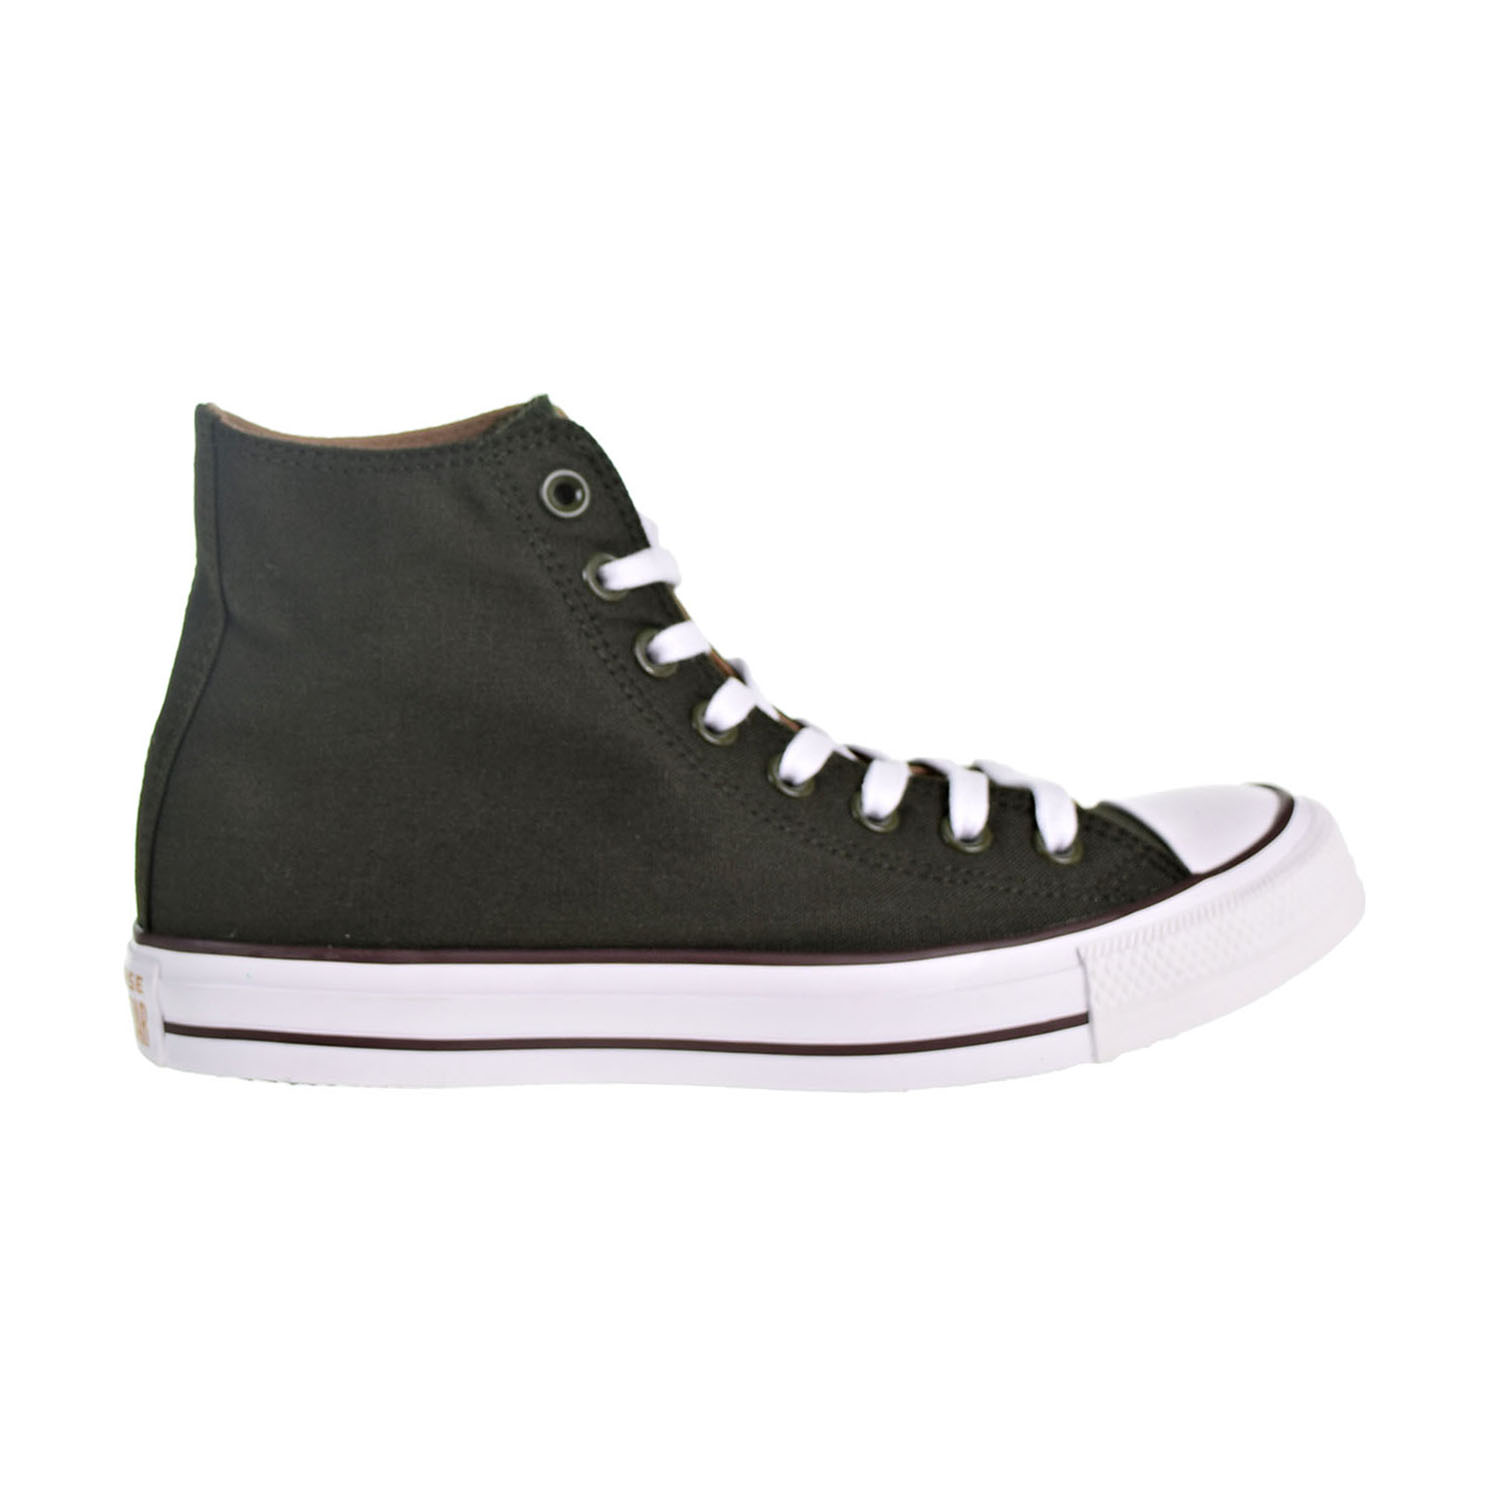 05b1e05b8ccf Converse Chuck Taylor All Star Hi Men s Shoes Utility Green Teak White  162449f